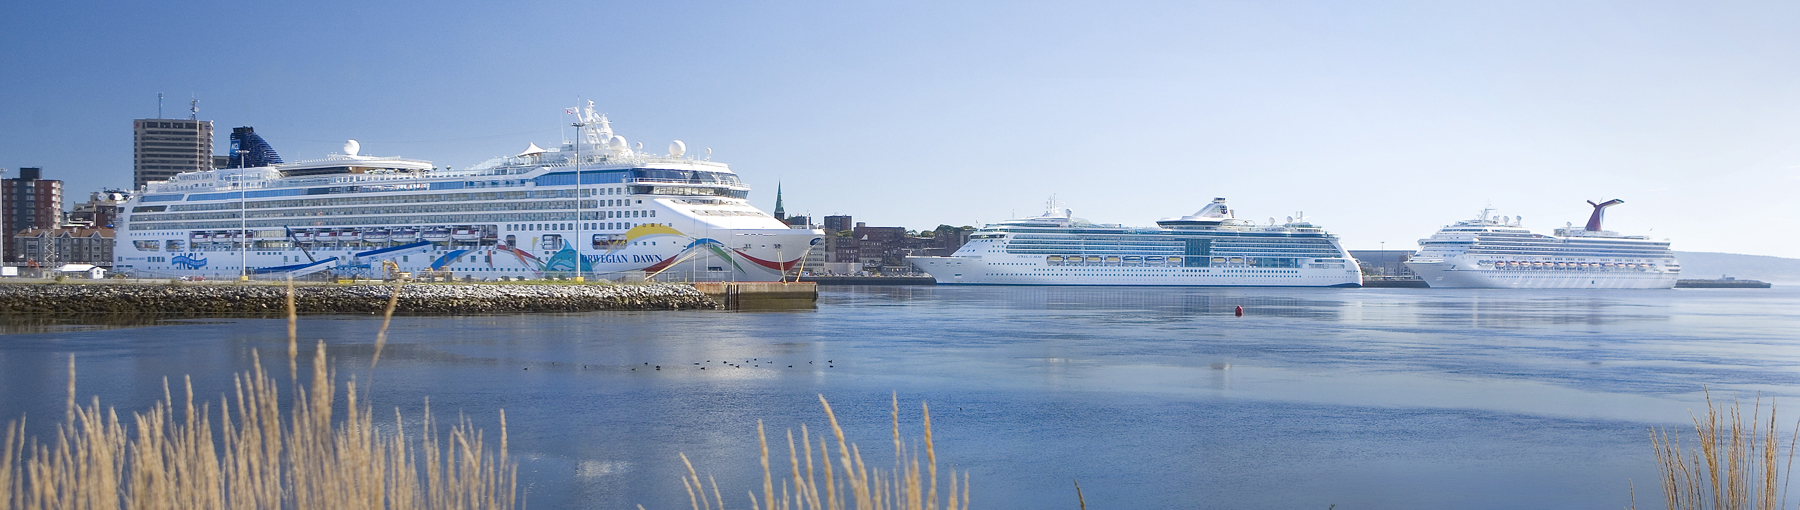 Cruise Schedule Port Saint John - How many cruise ships in port schedule